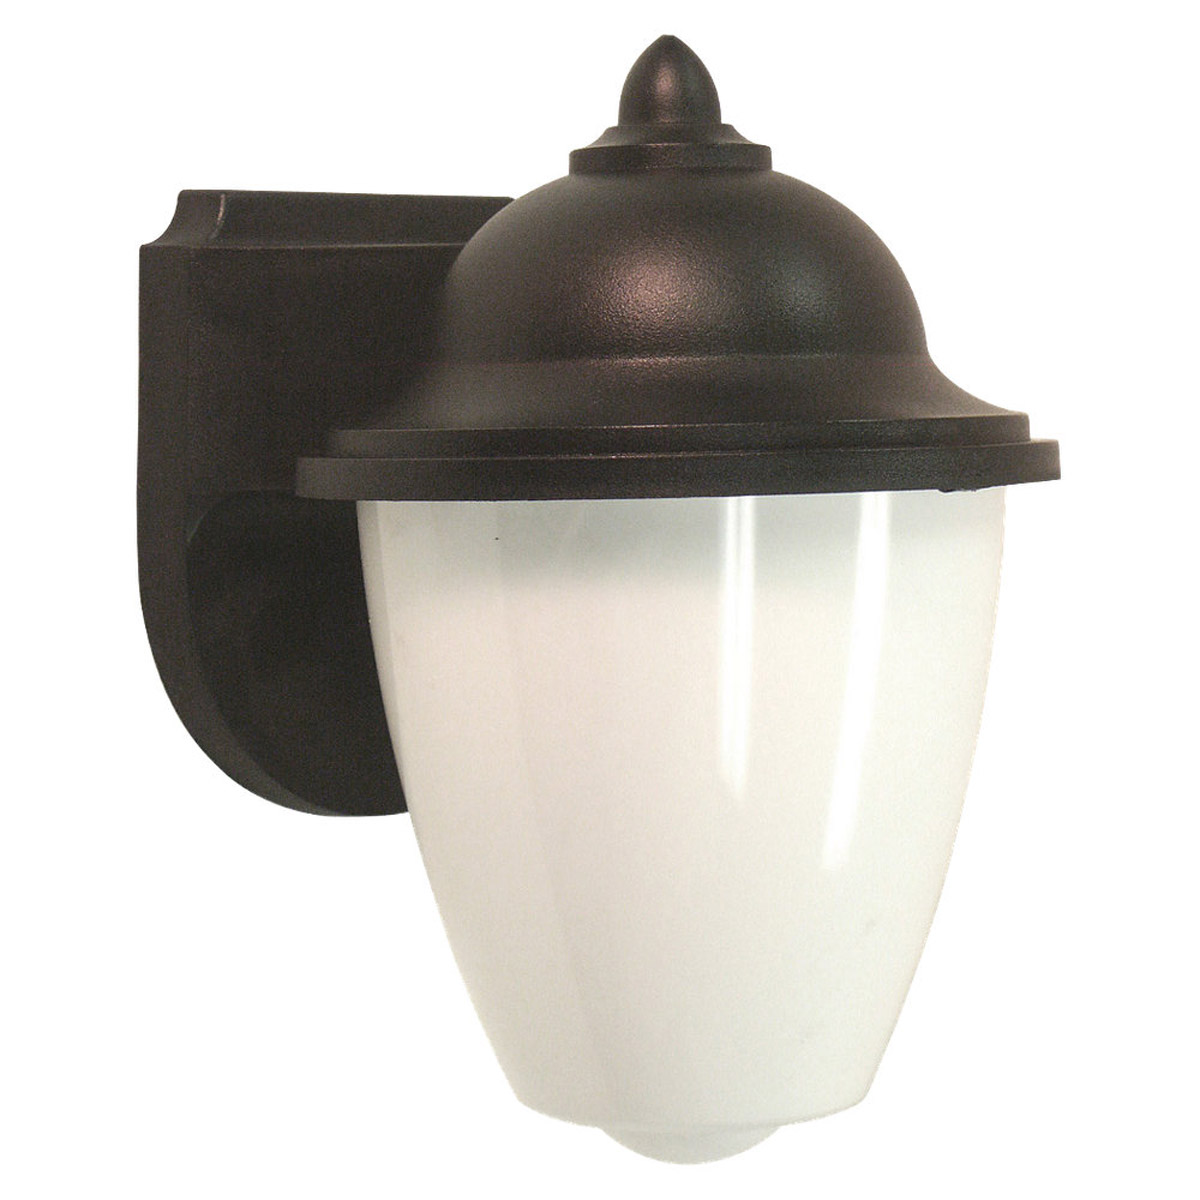 Sea Gull Lighting Lormont 1 Light Outdoor Wall Lantern in Black 88018-12